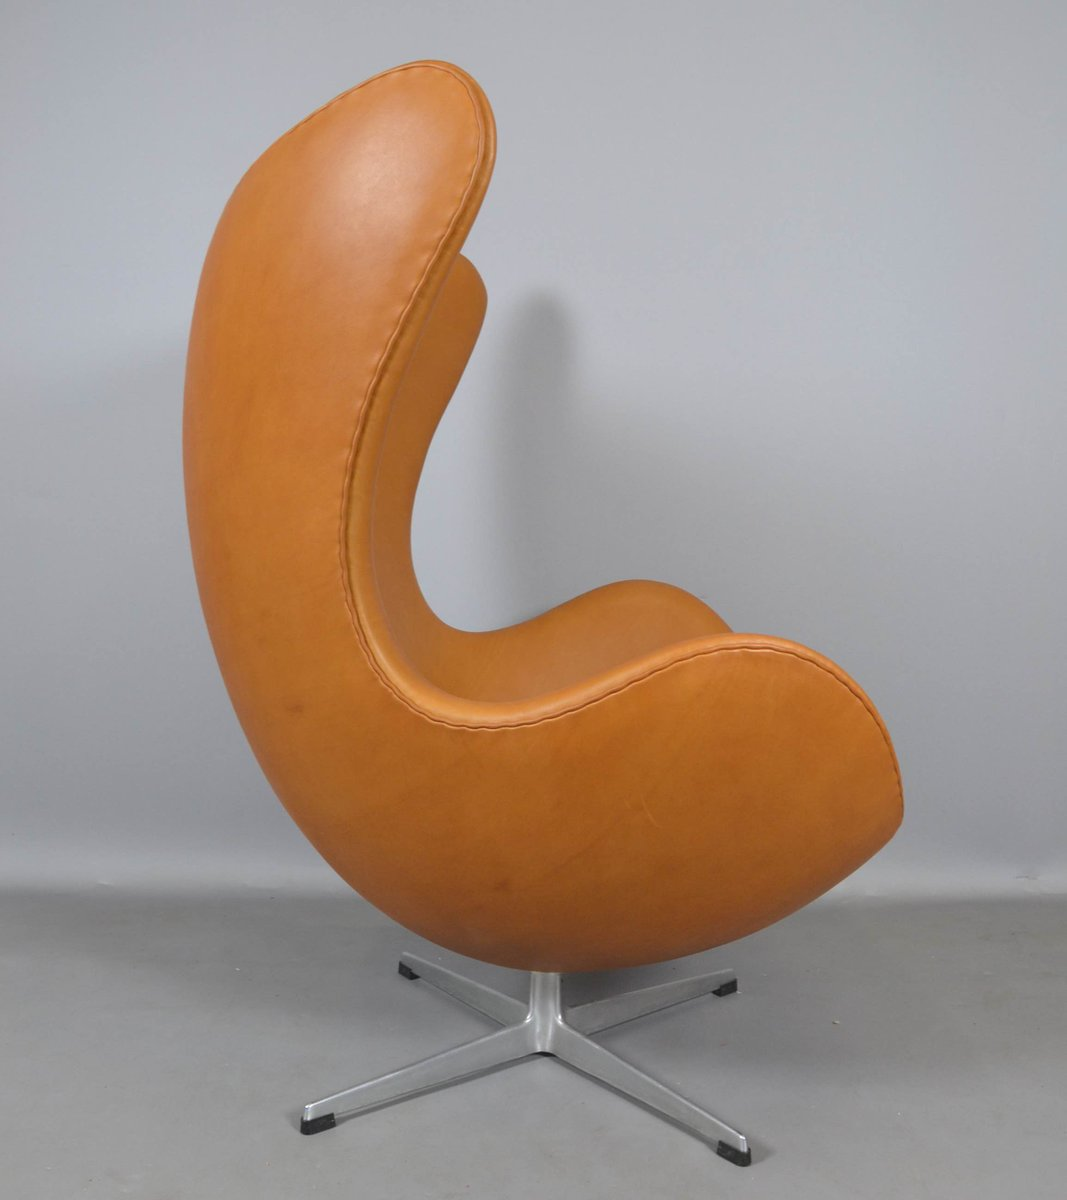 leder egg chair von arne jacobsen f r fritz hansen 1970er. Black Bedroom Furniture Sets. Home Design Ideas